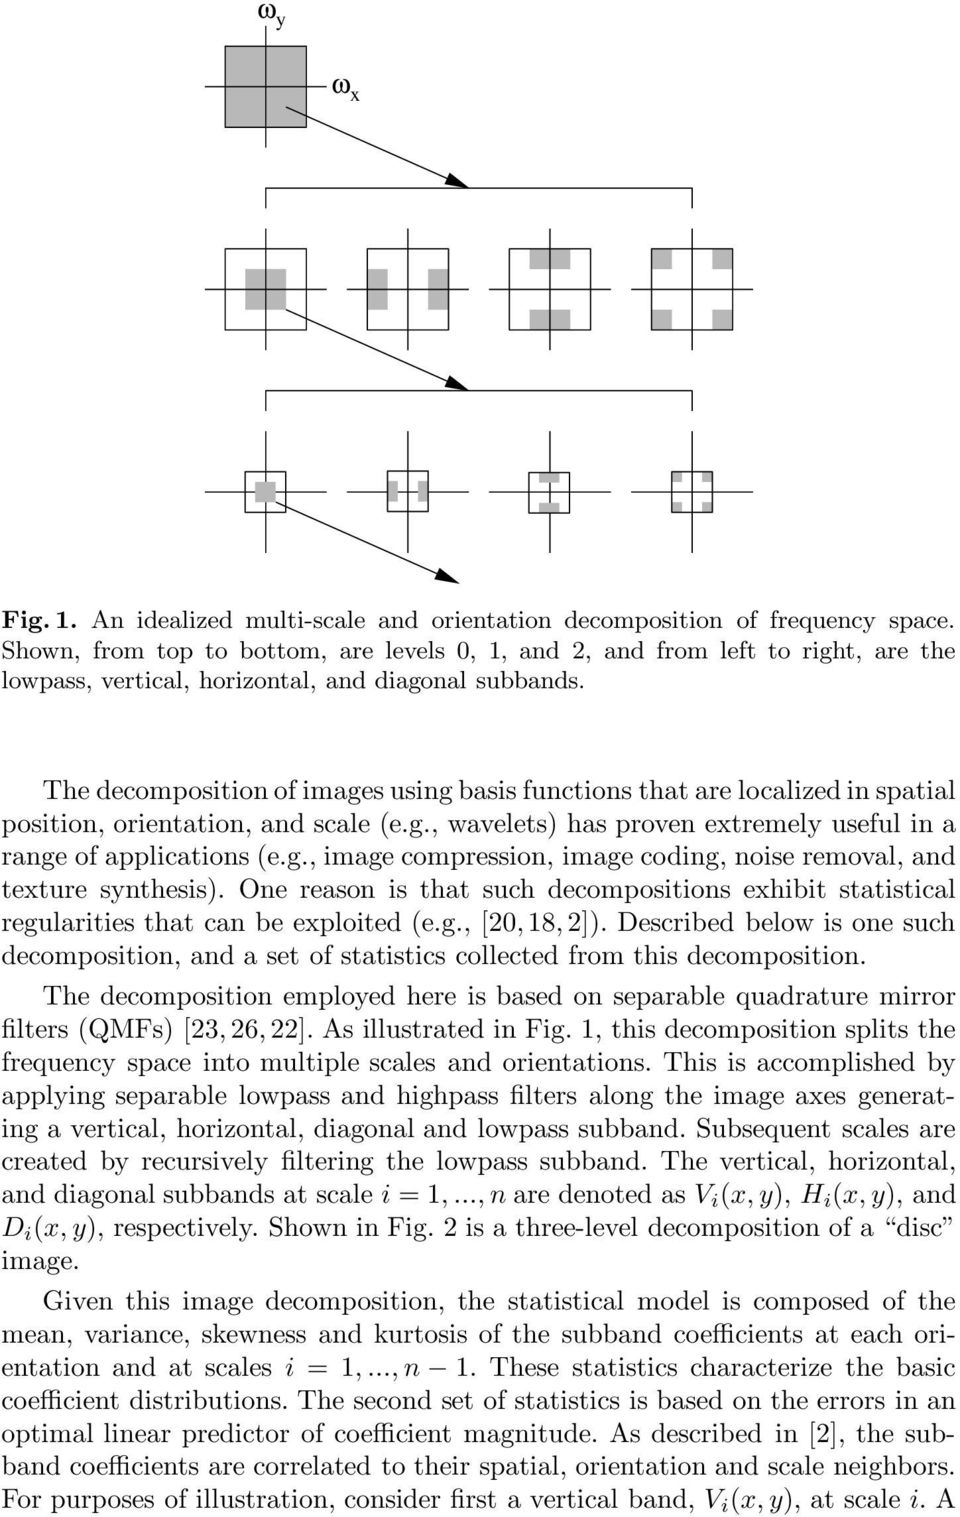 The decomposition of images using basis functions that are localized in spatial position, orientation, and scale (e.g., wavelets) has proven extremely useful in a range of applications (e.g., image compression, image coding, noise removal, and texture synthesis).